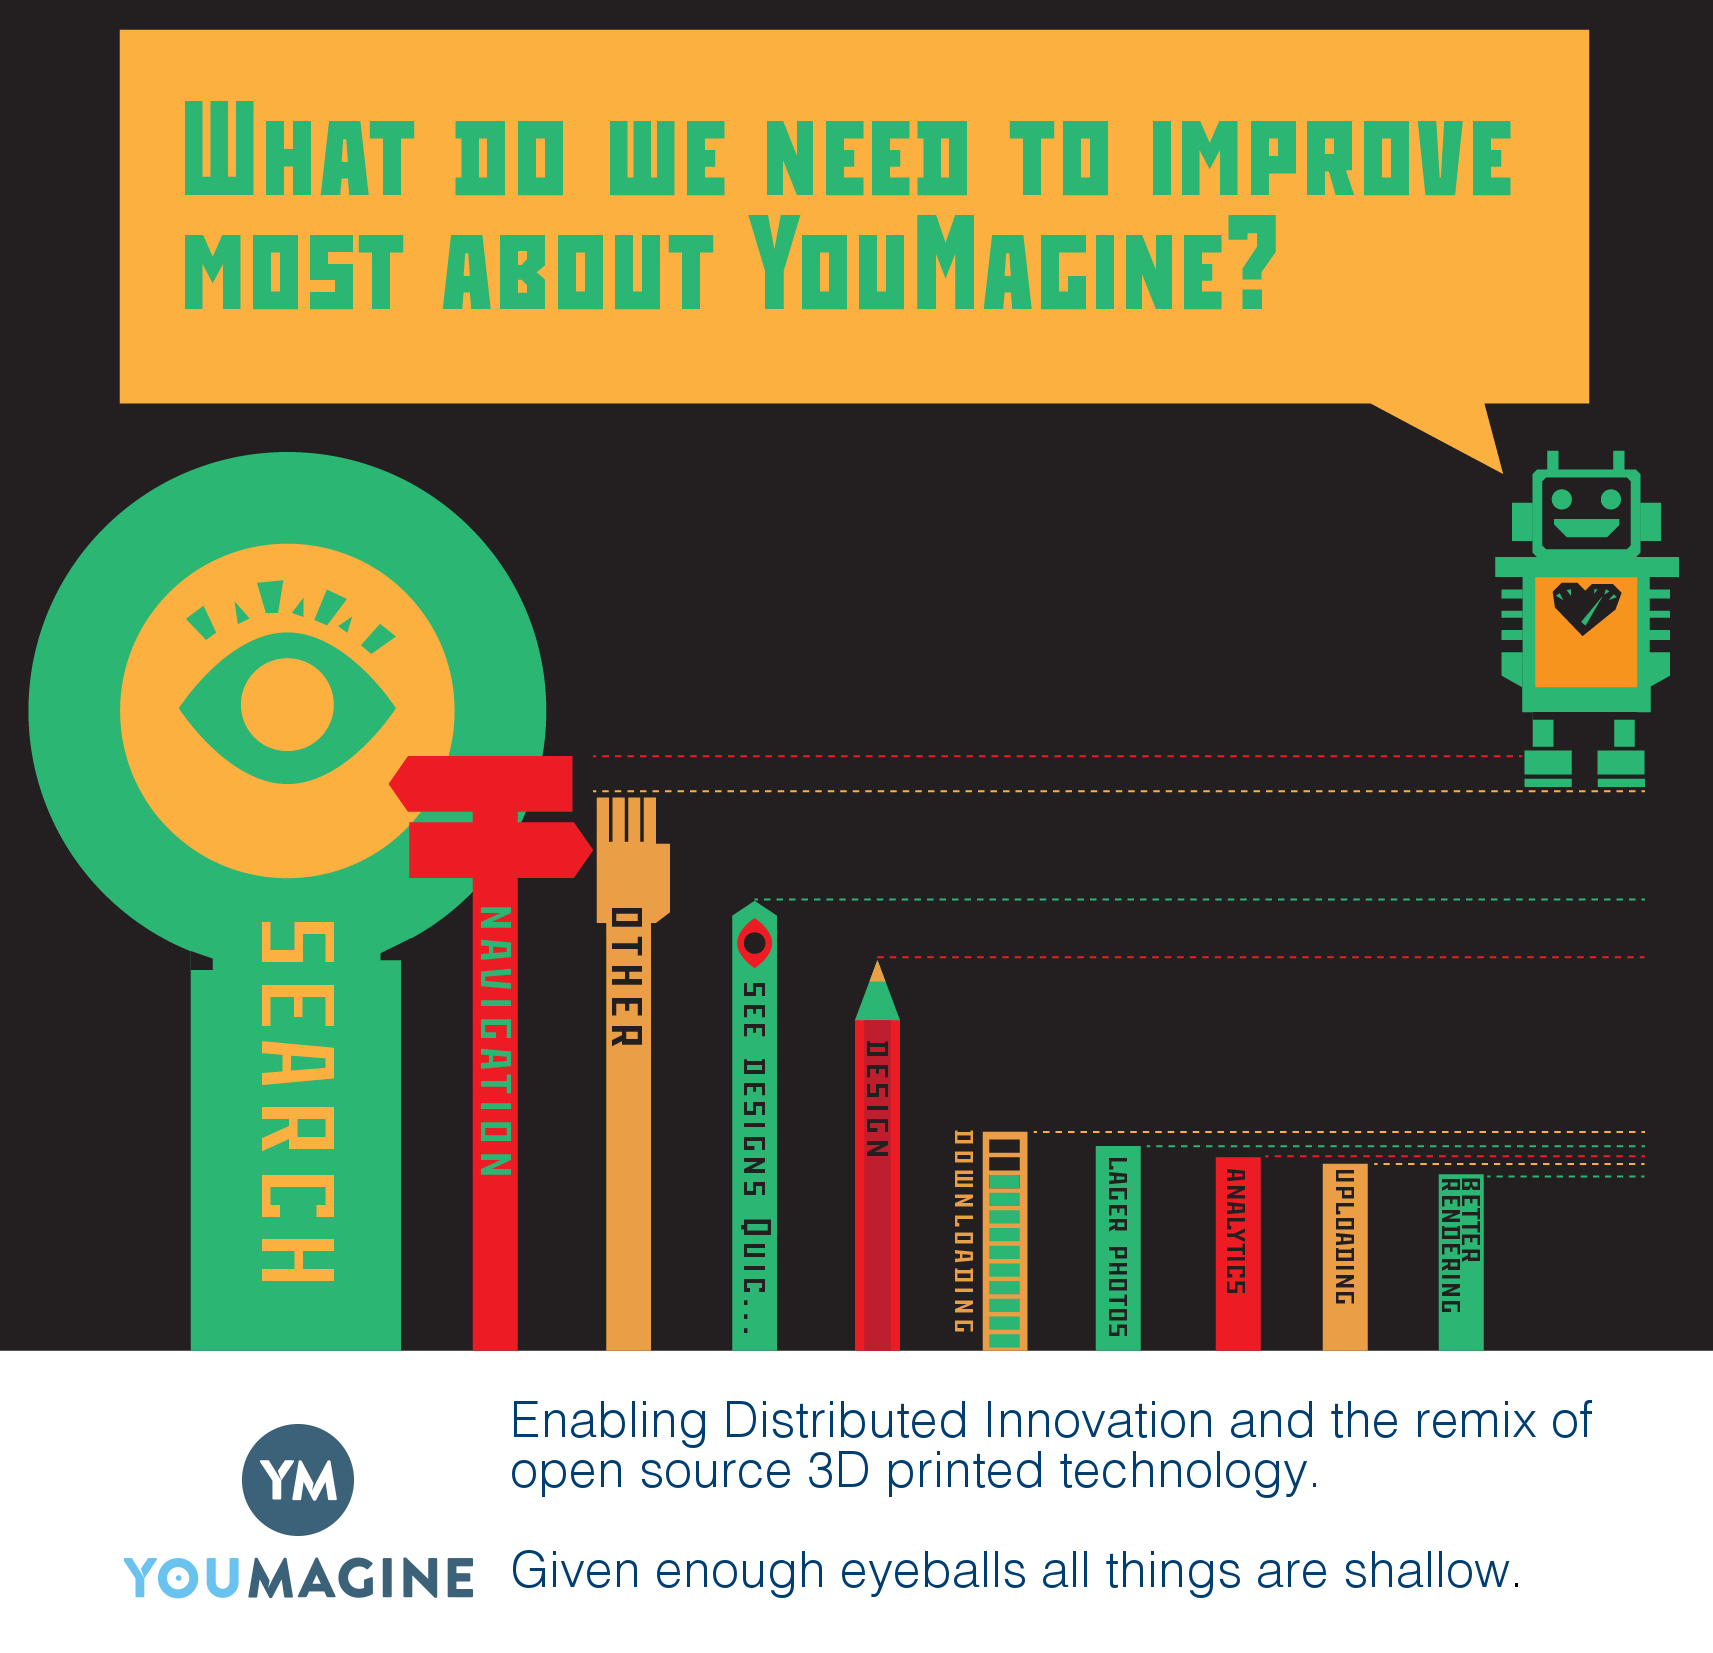 What do we need to improve about YouMagine?